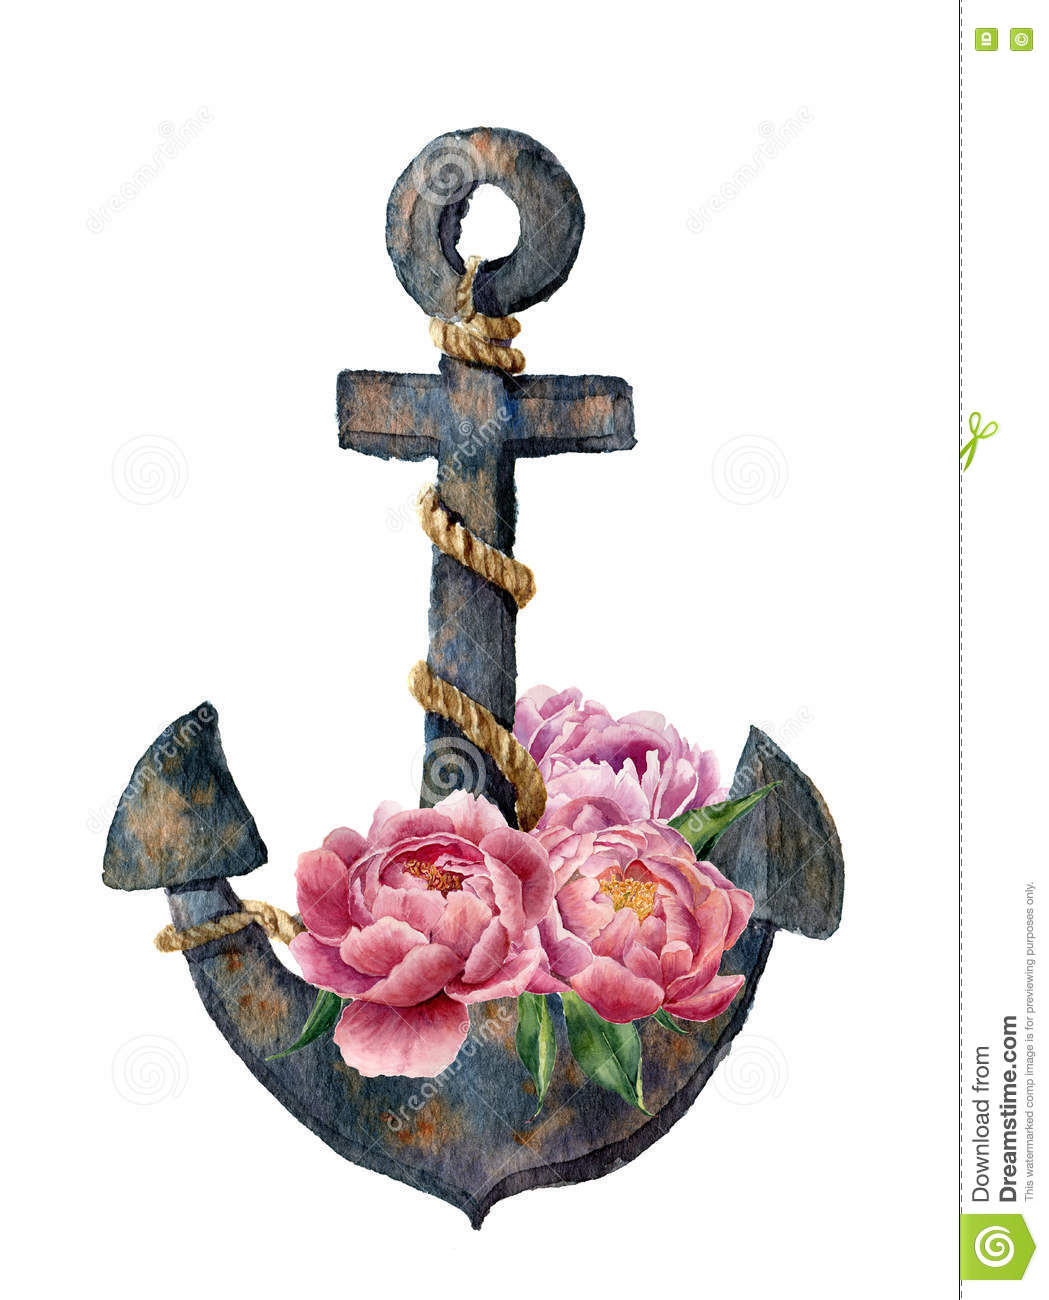 Watercolor Retro Anchor With Rope And Peony Flowers